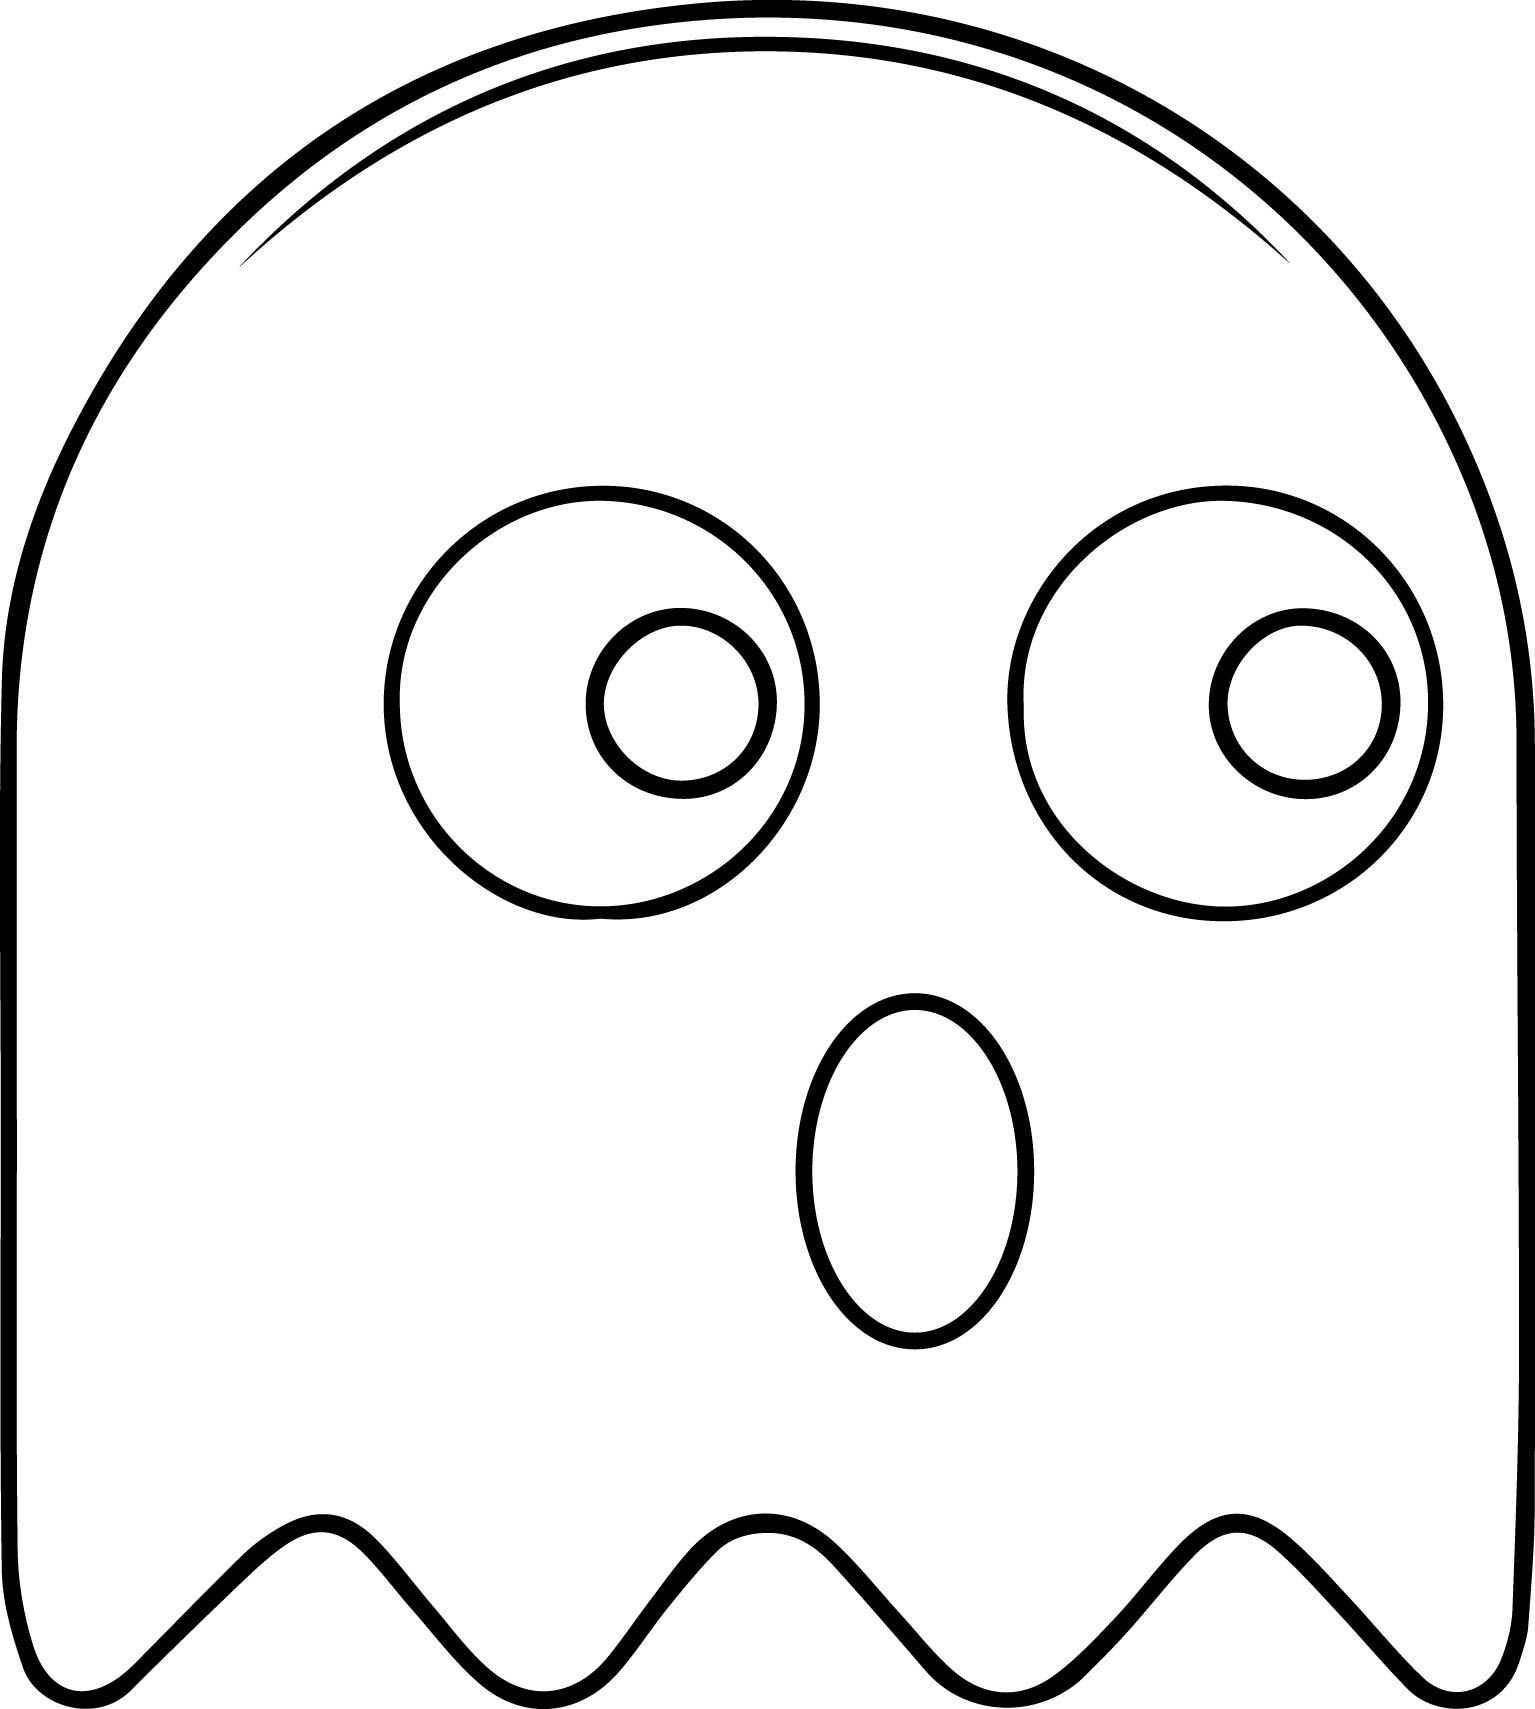 Pacman coloring page wecoloringpage 140 color in for Pacman free coloring pages